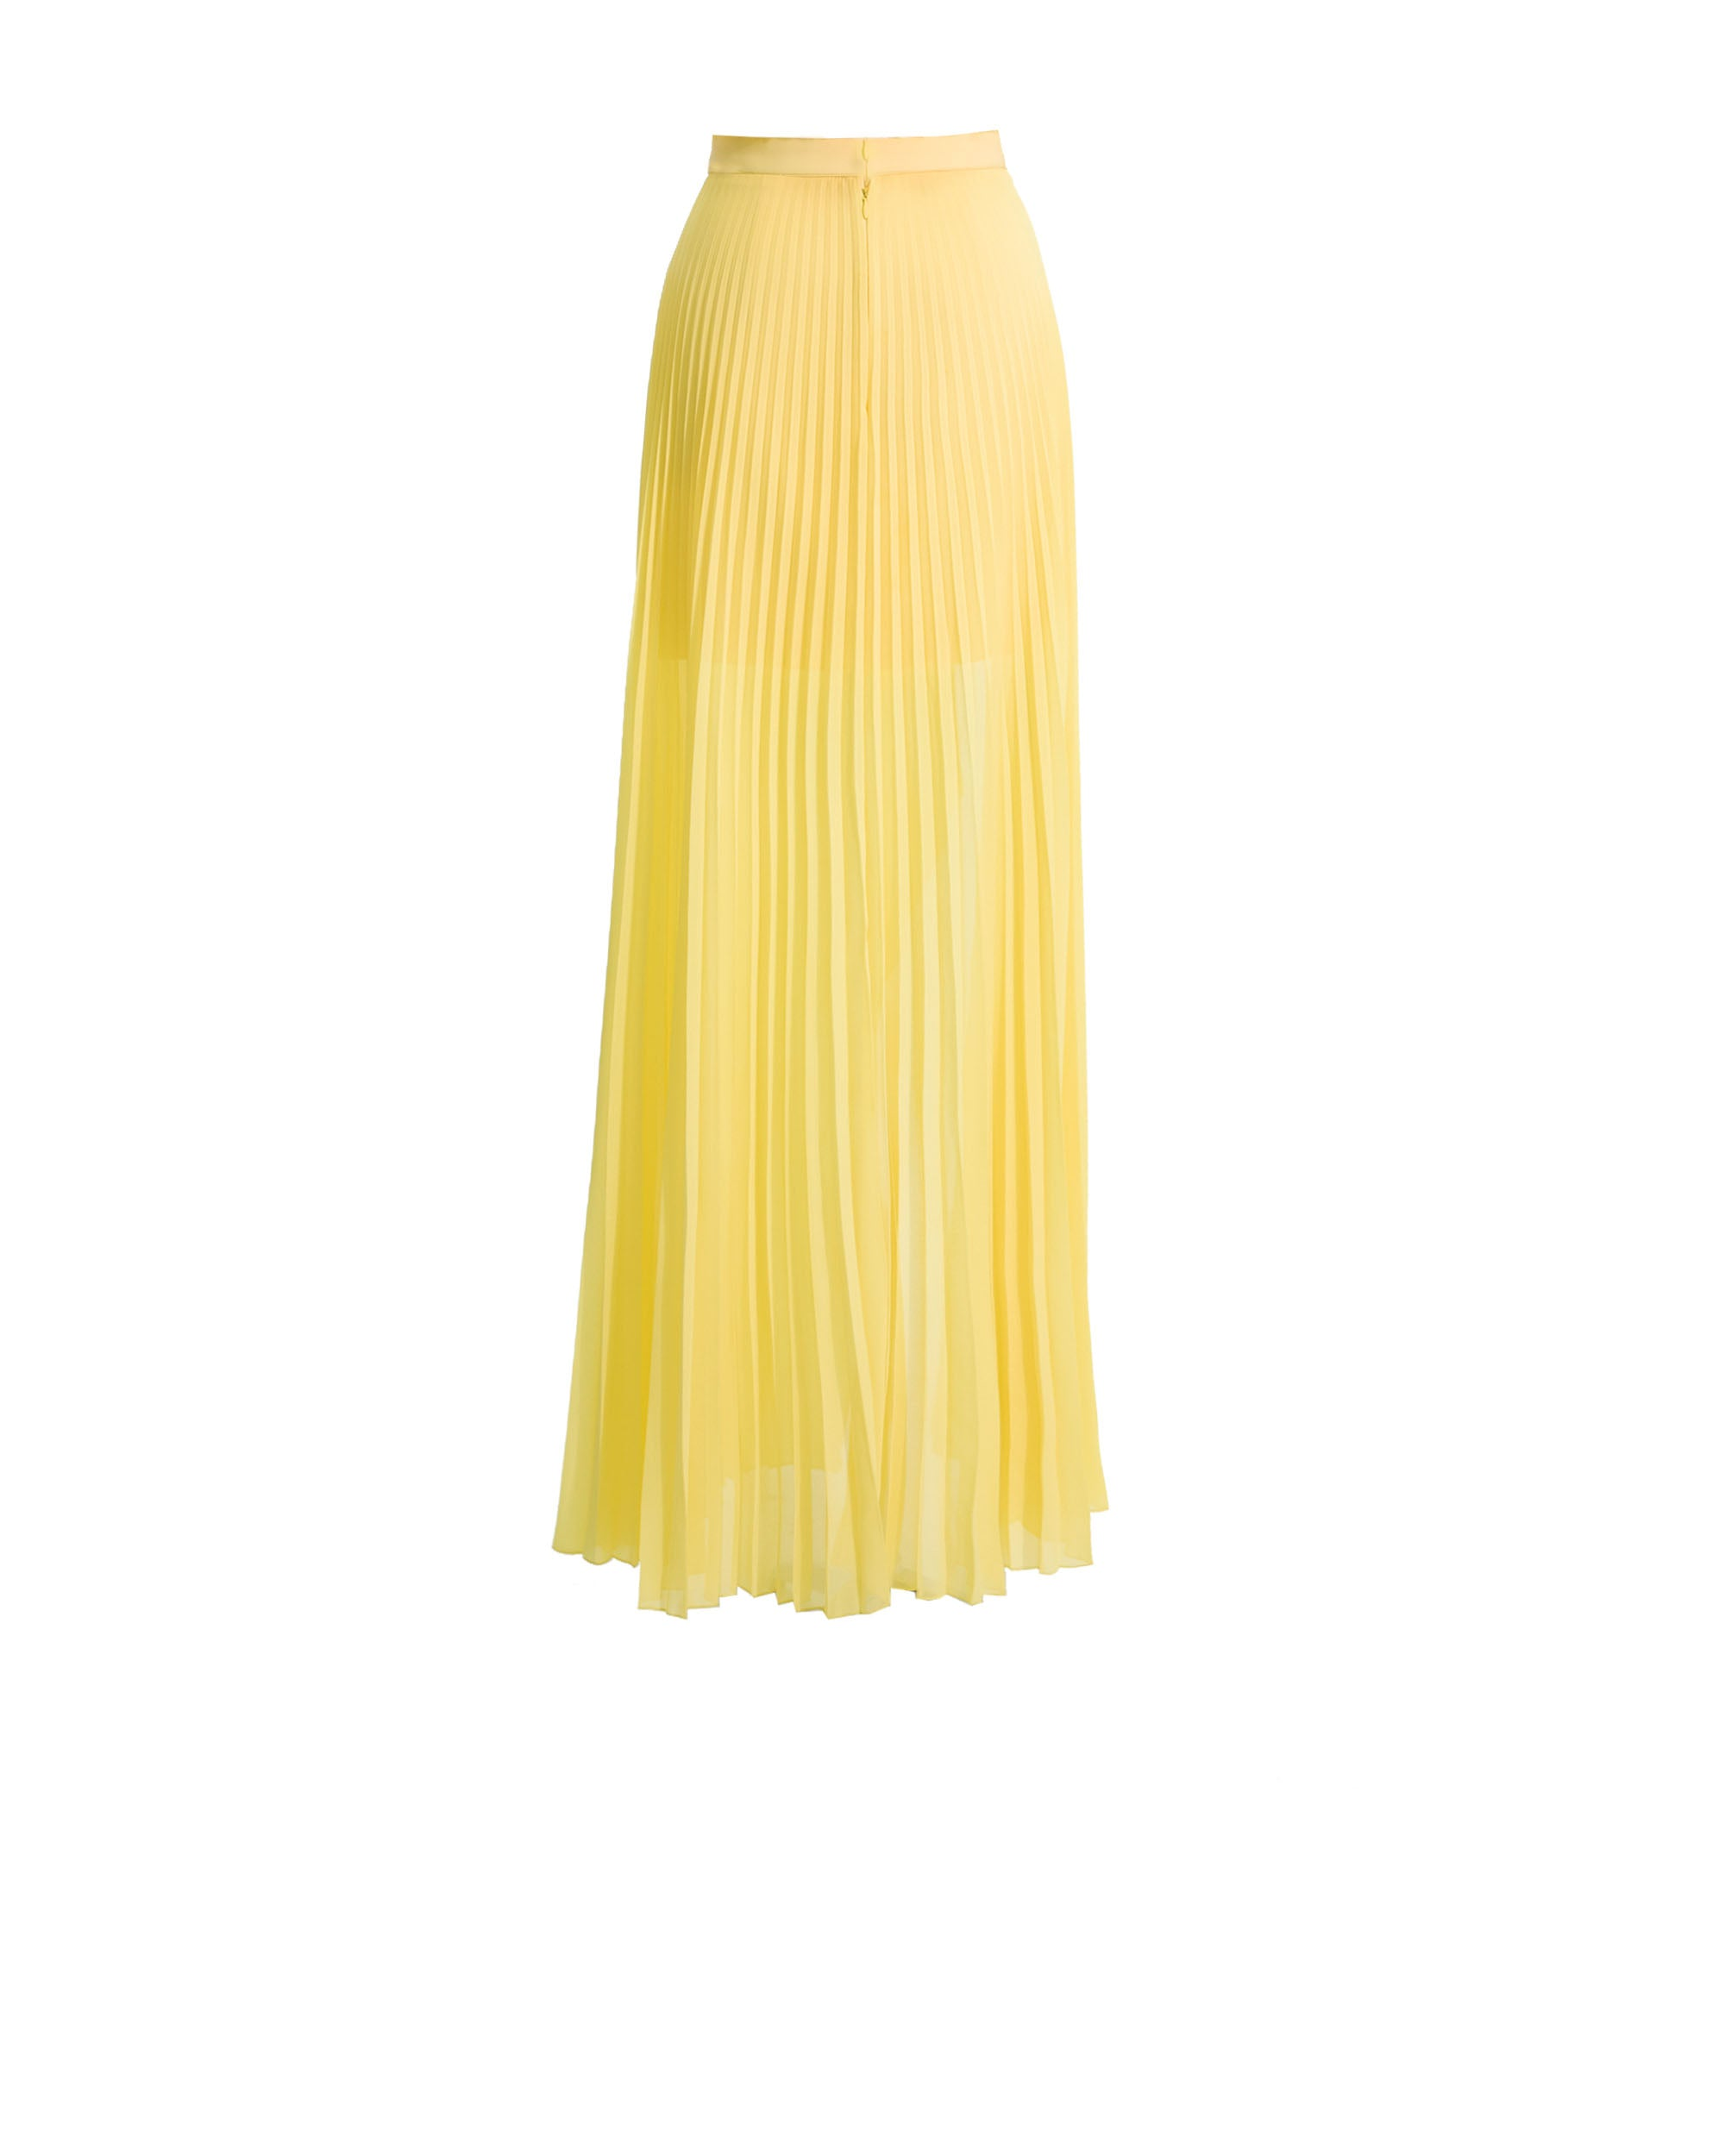 Mousseline Pleated Skirt